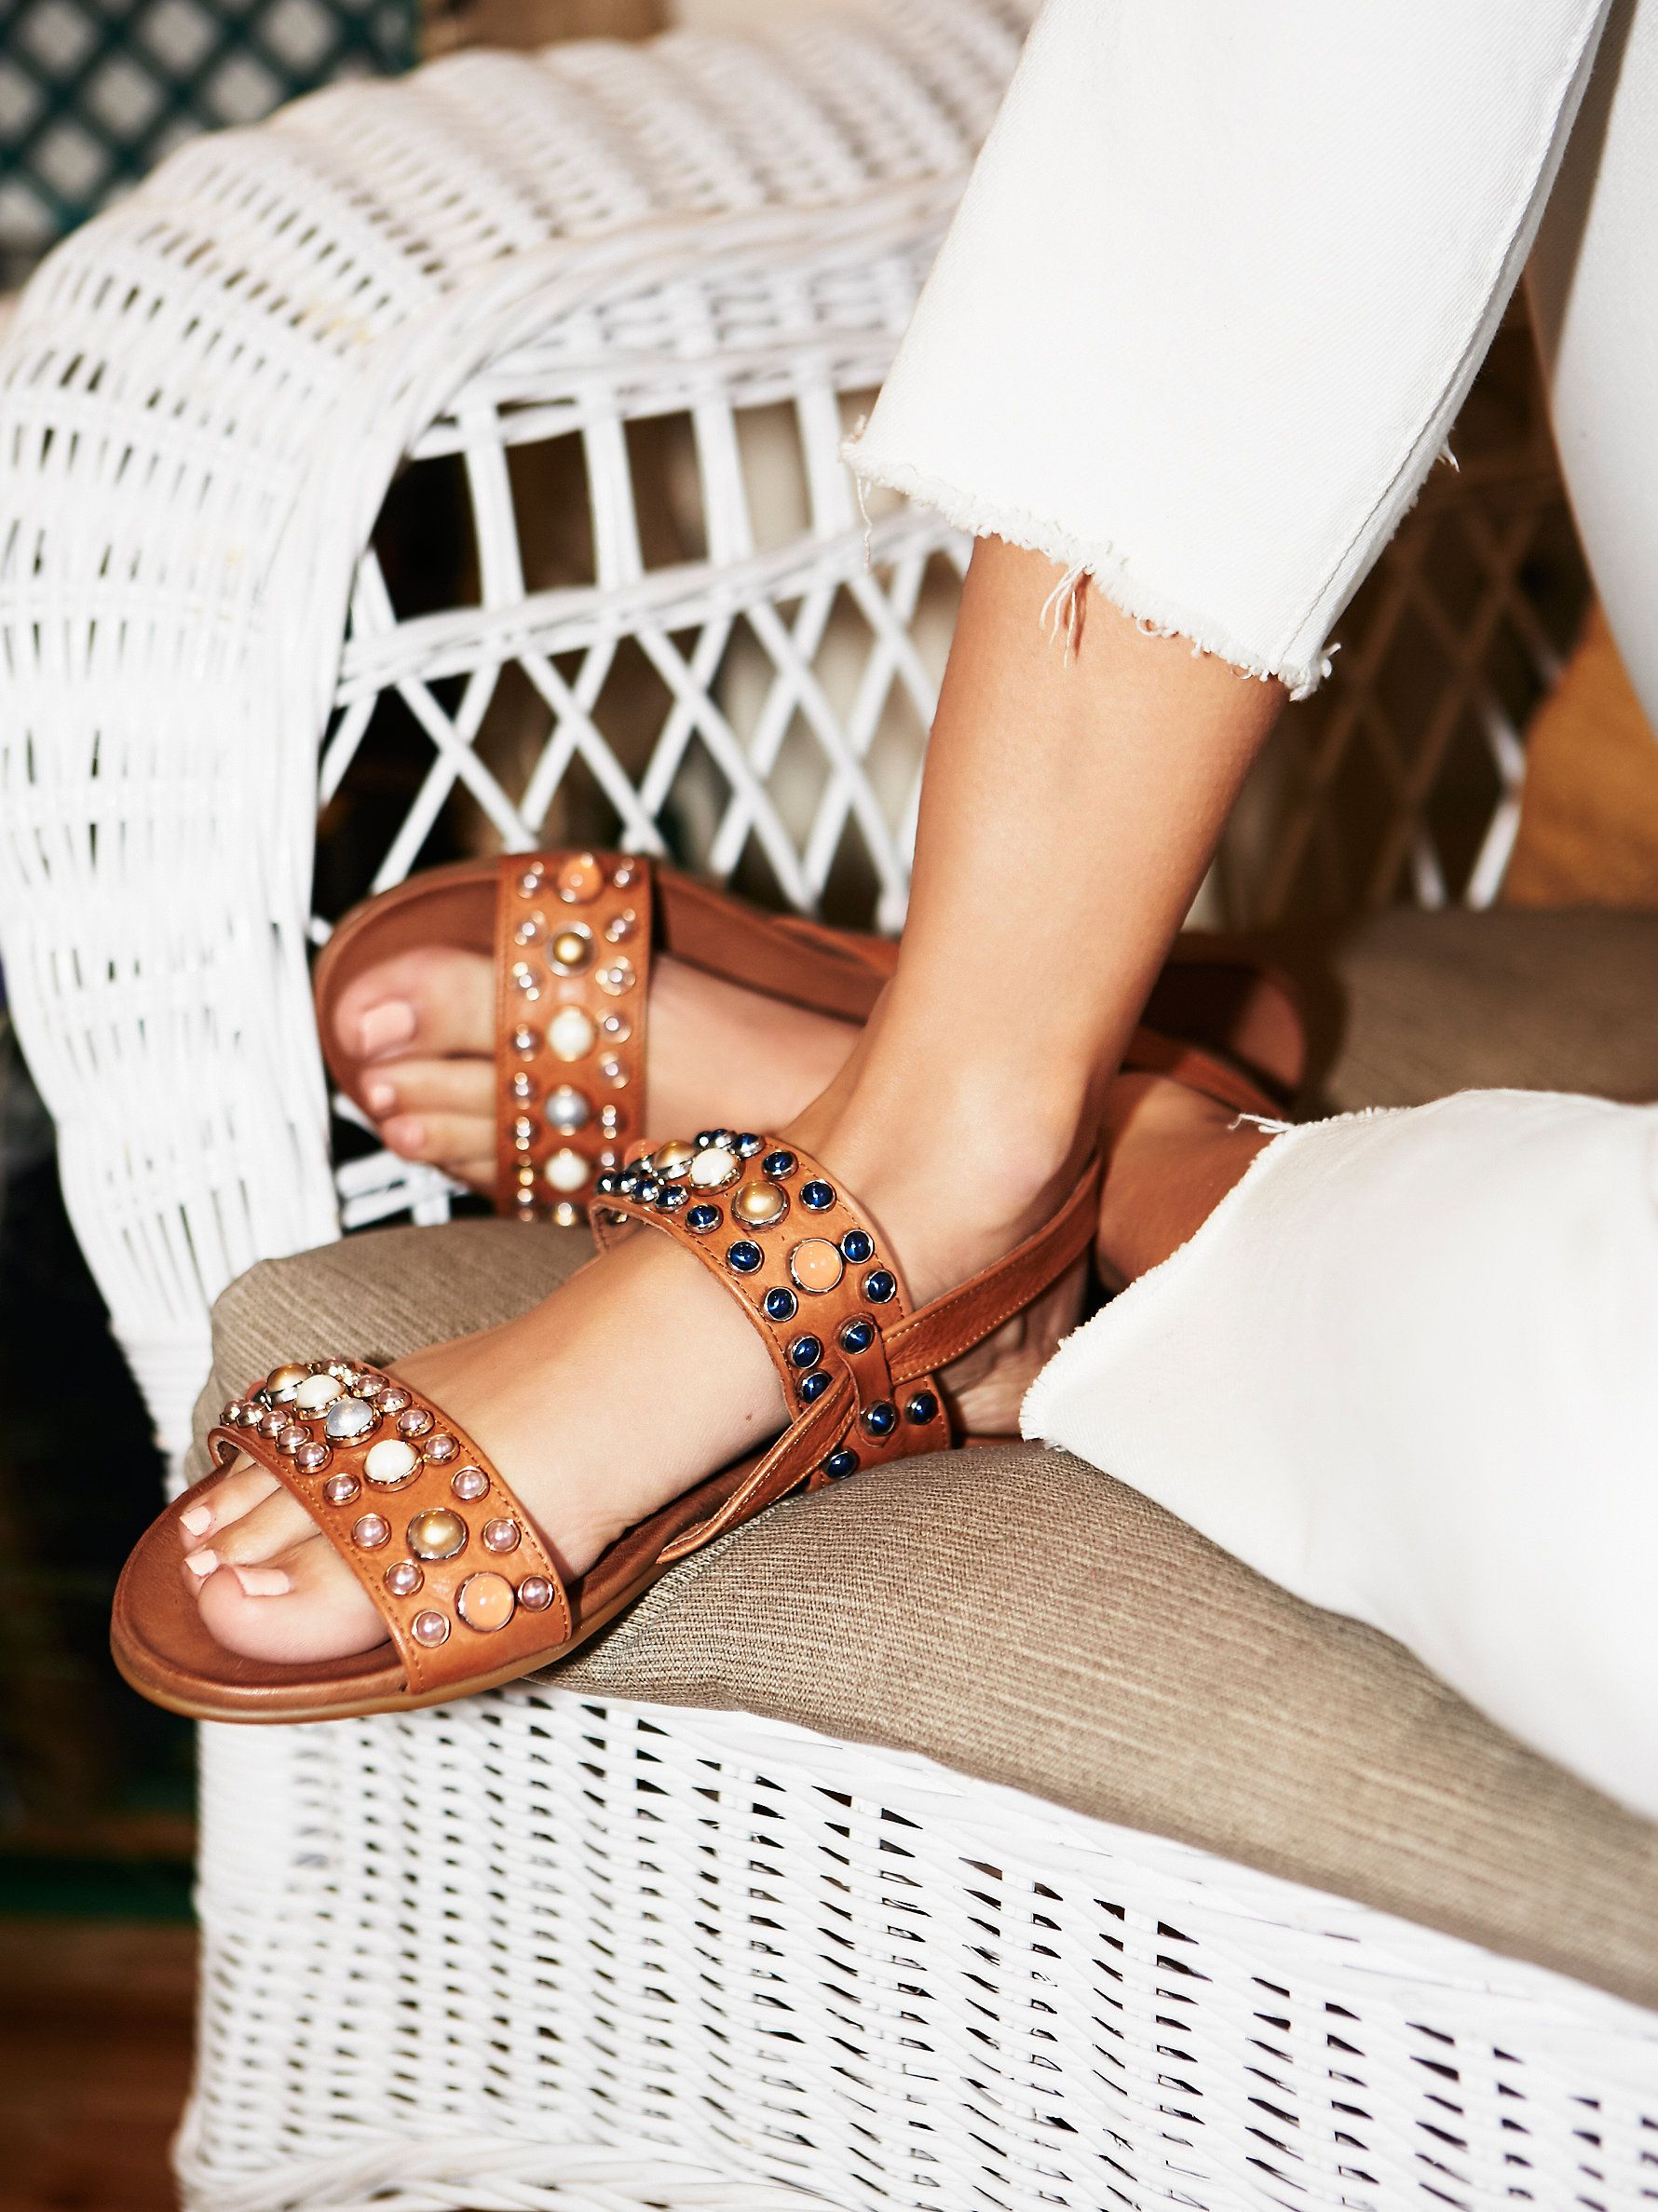 Slip-on leather sandals embellished with allover stone detailing. Adjustable ankle strap in back and a treaded rubber sole.